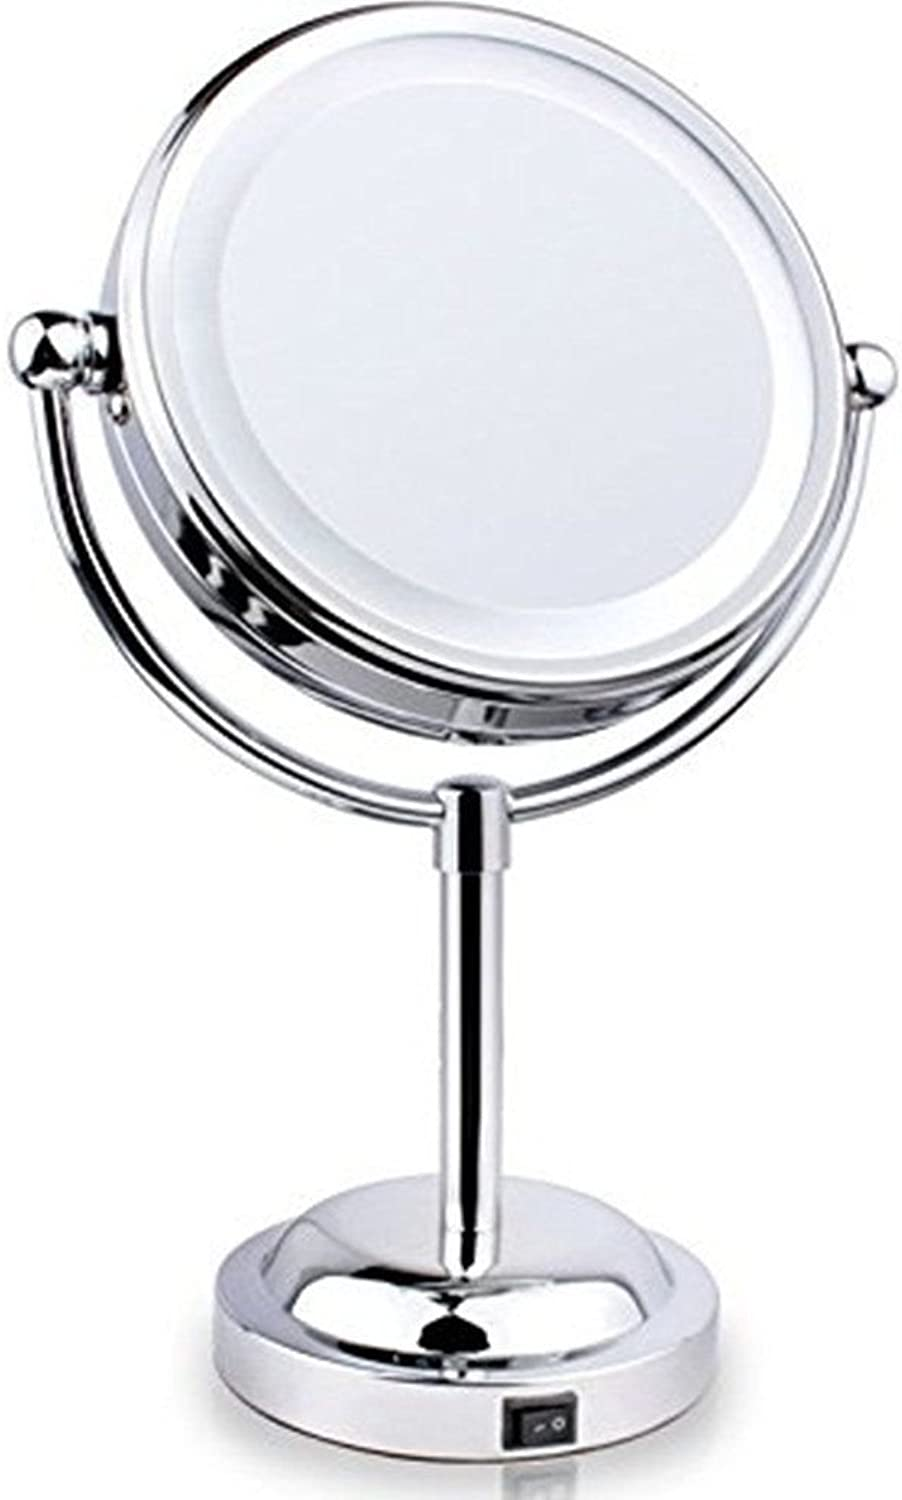 Makeup Mirror,Double-Sided LED Lighted Vanity Mirrors with 3X Polished  7.48x3.9x11.4 inch